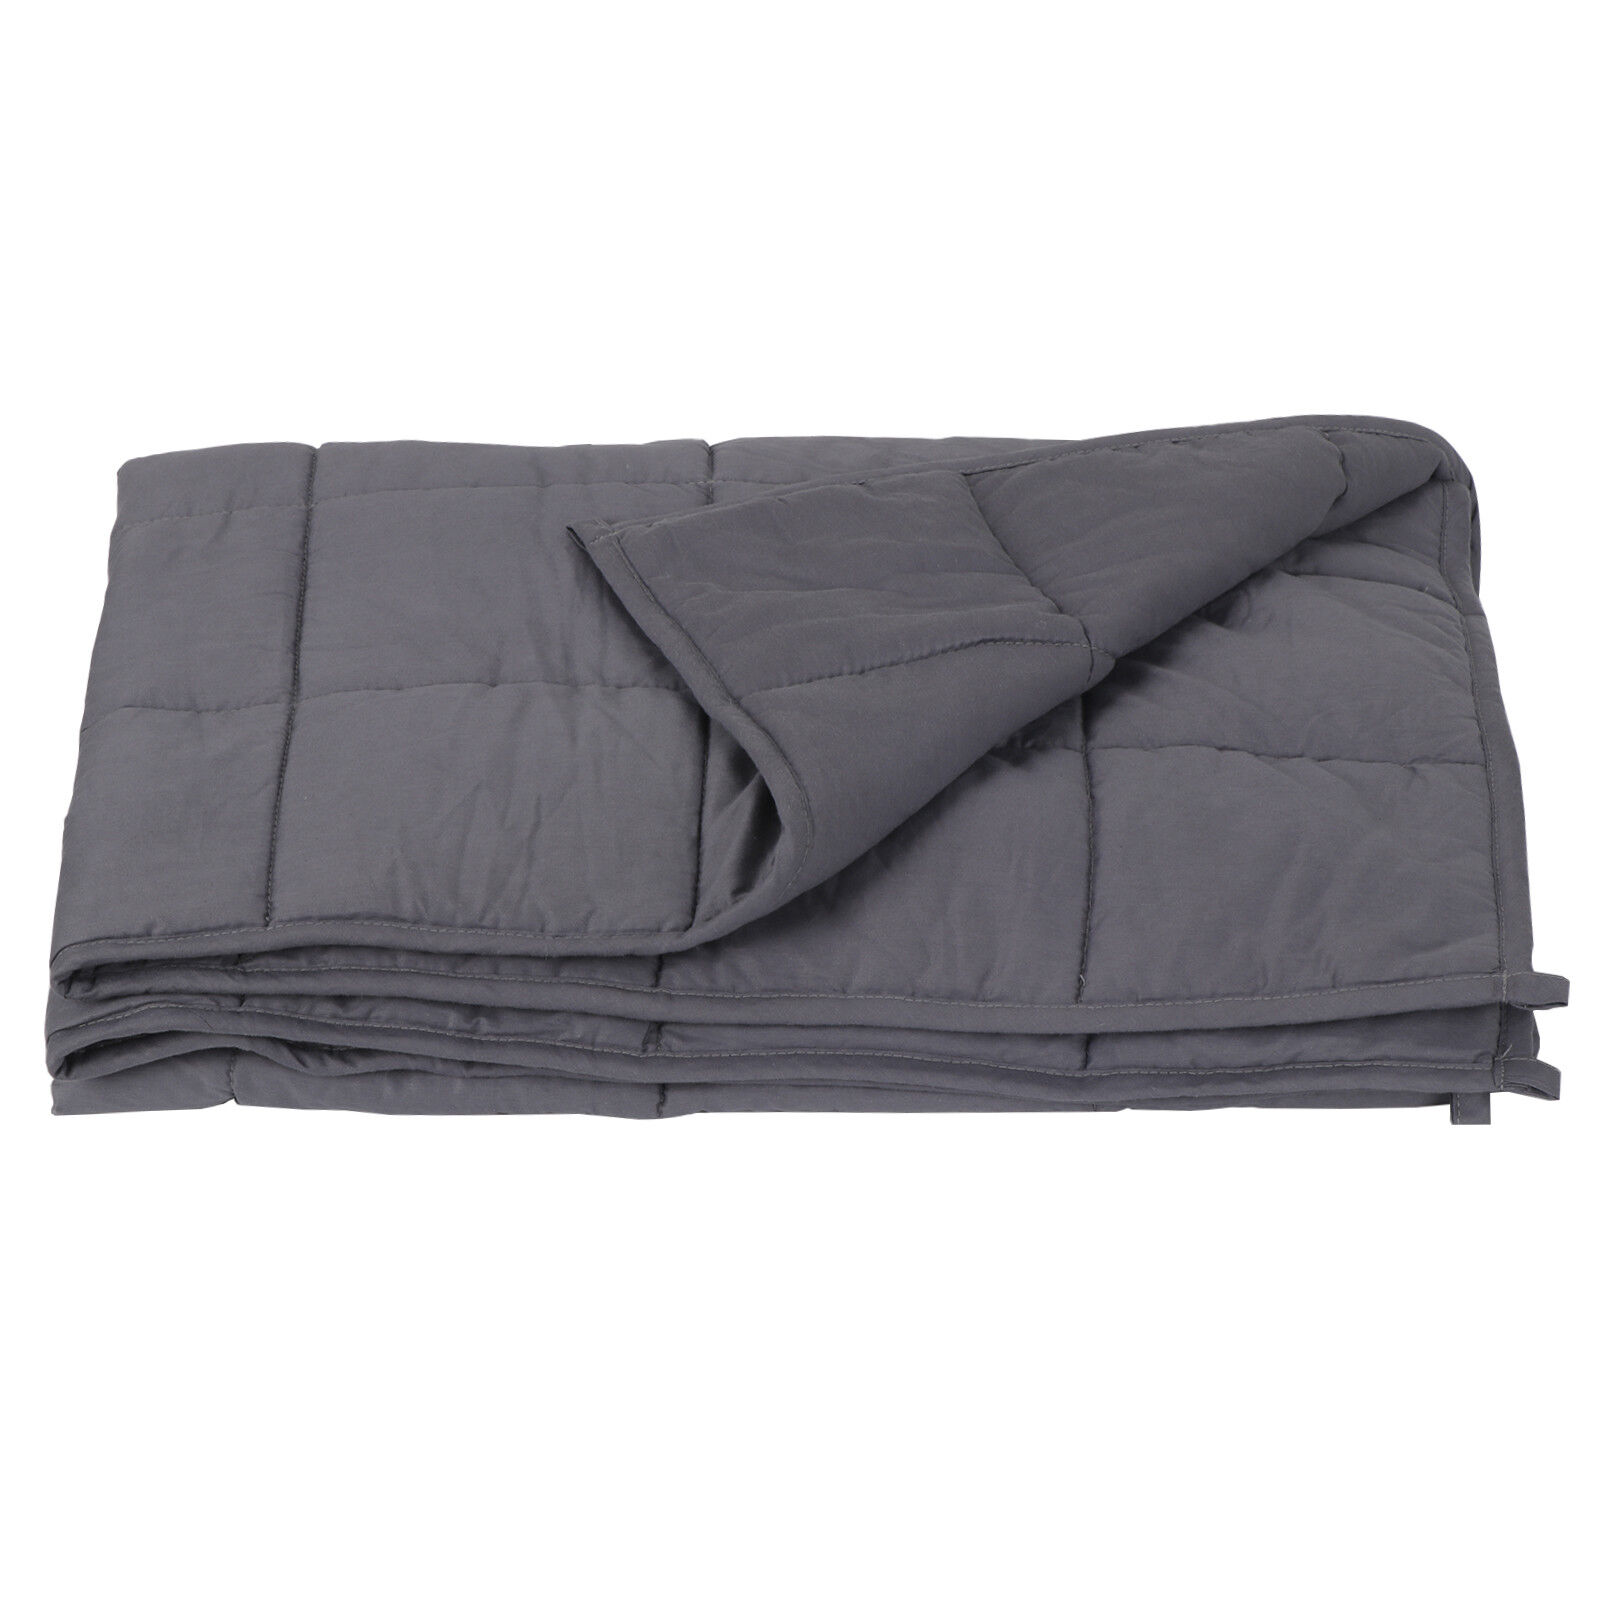 Weighted Blanket  Full Queen Size 60″ x80″ Reduce Stress Promote Deep Sleep 20lb Bedding